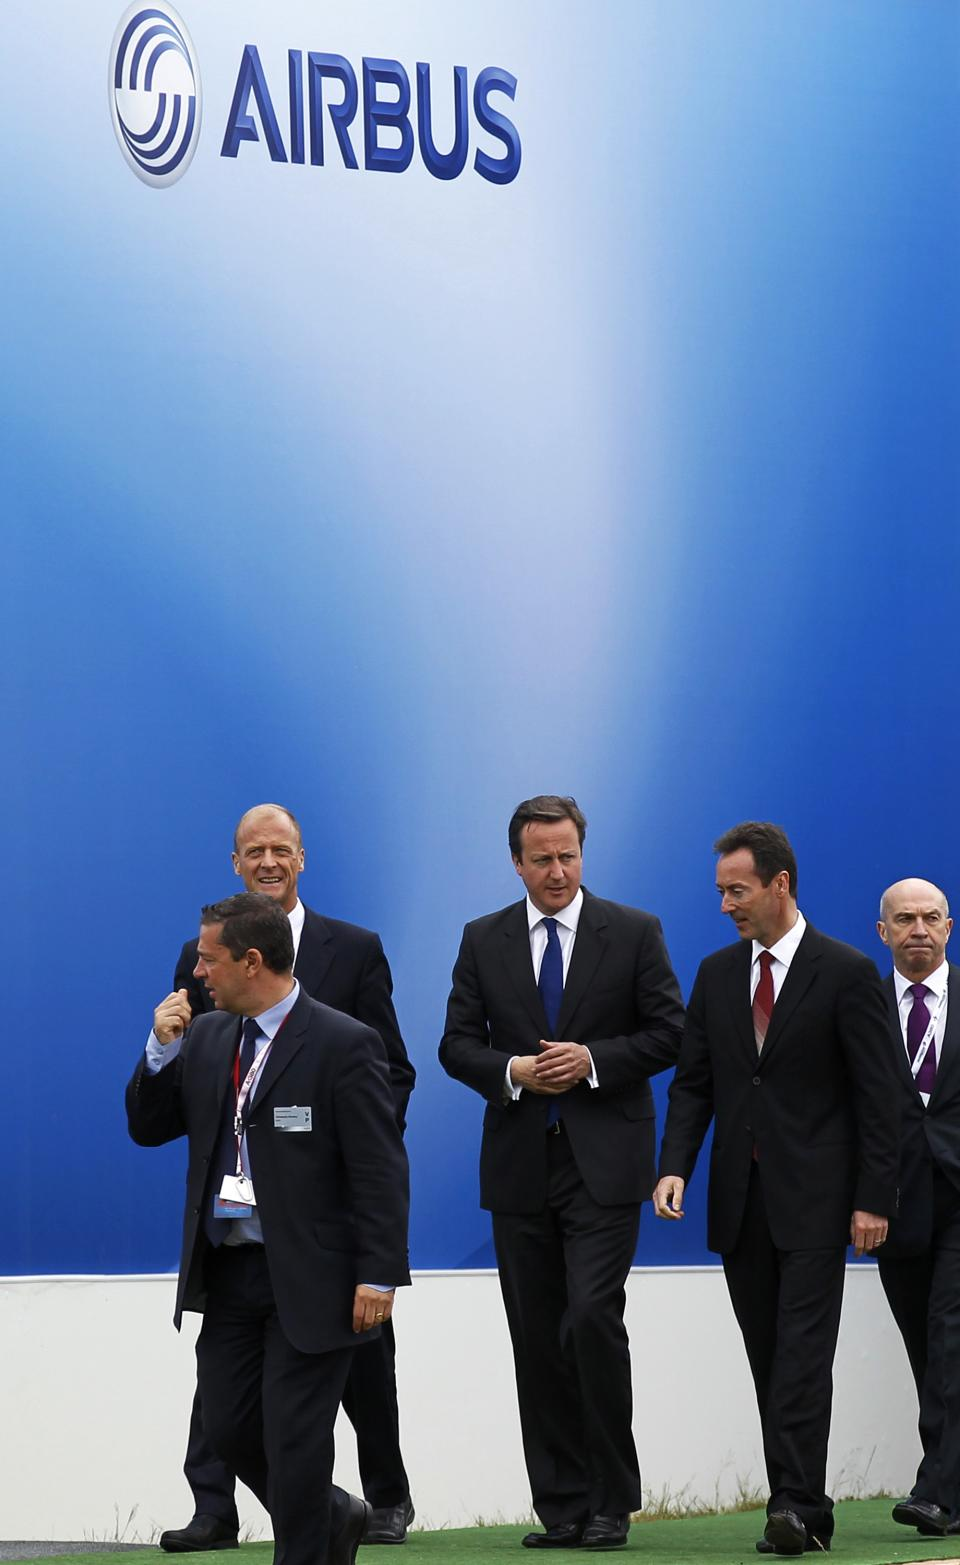 Britain's Prime Minister David Cameron, center, walks with President of Airbus Fabrice Bregier, second right, as he arrives to visit the Airbus display during the Farnborough International Airshow, Farnborough, England, Monday, July 9, 2012. (AP Photo/Sang Tan)